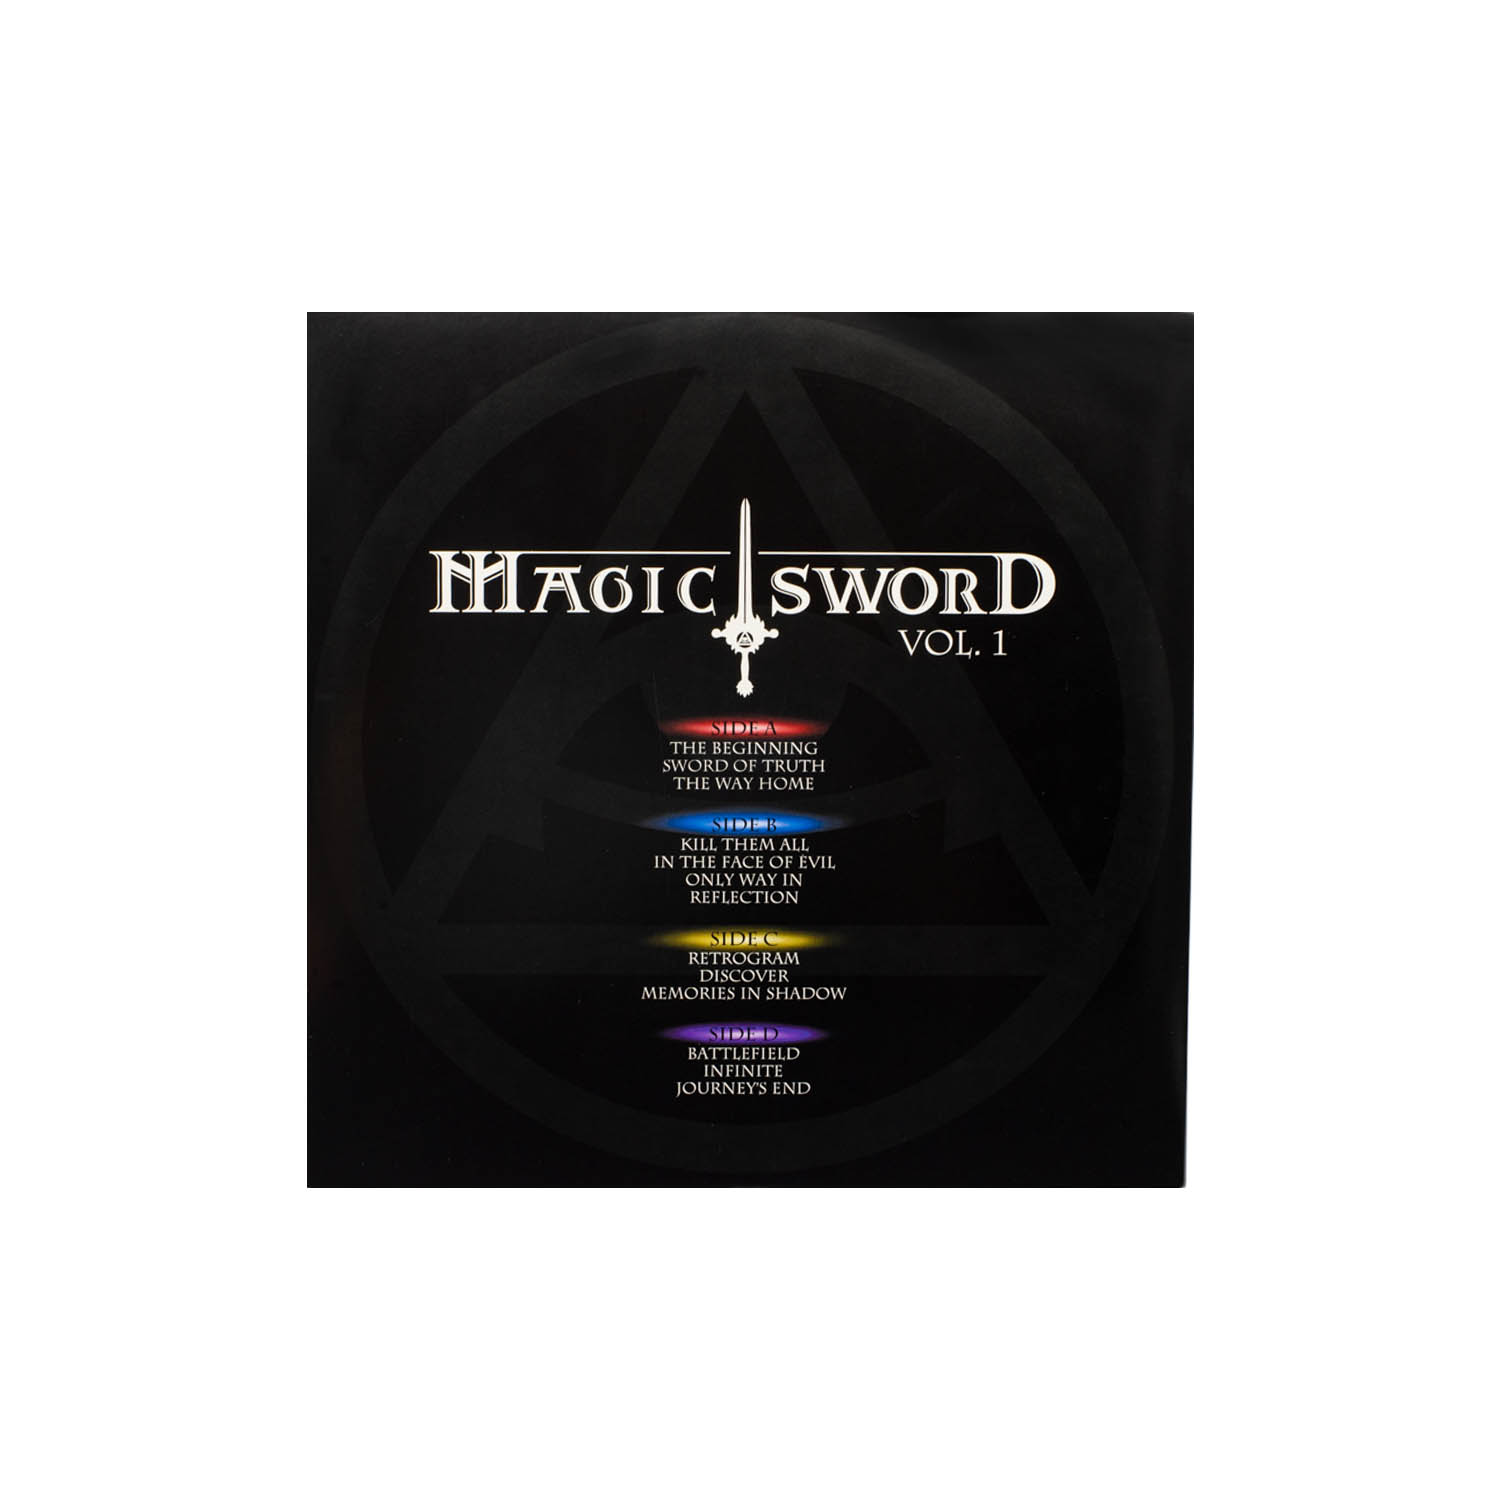 Magic Sword - Vol. 1 Deluxe